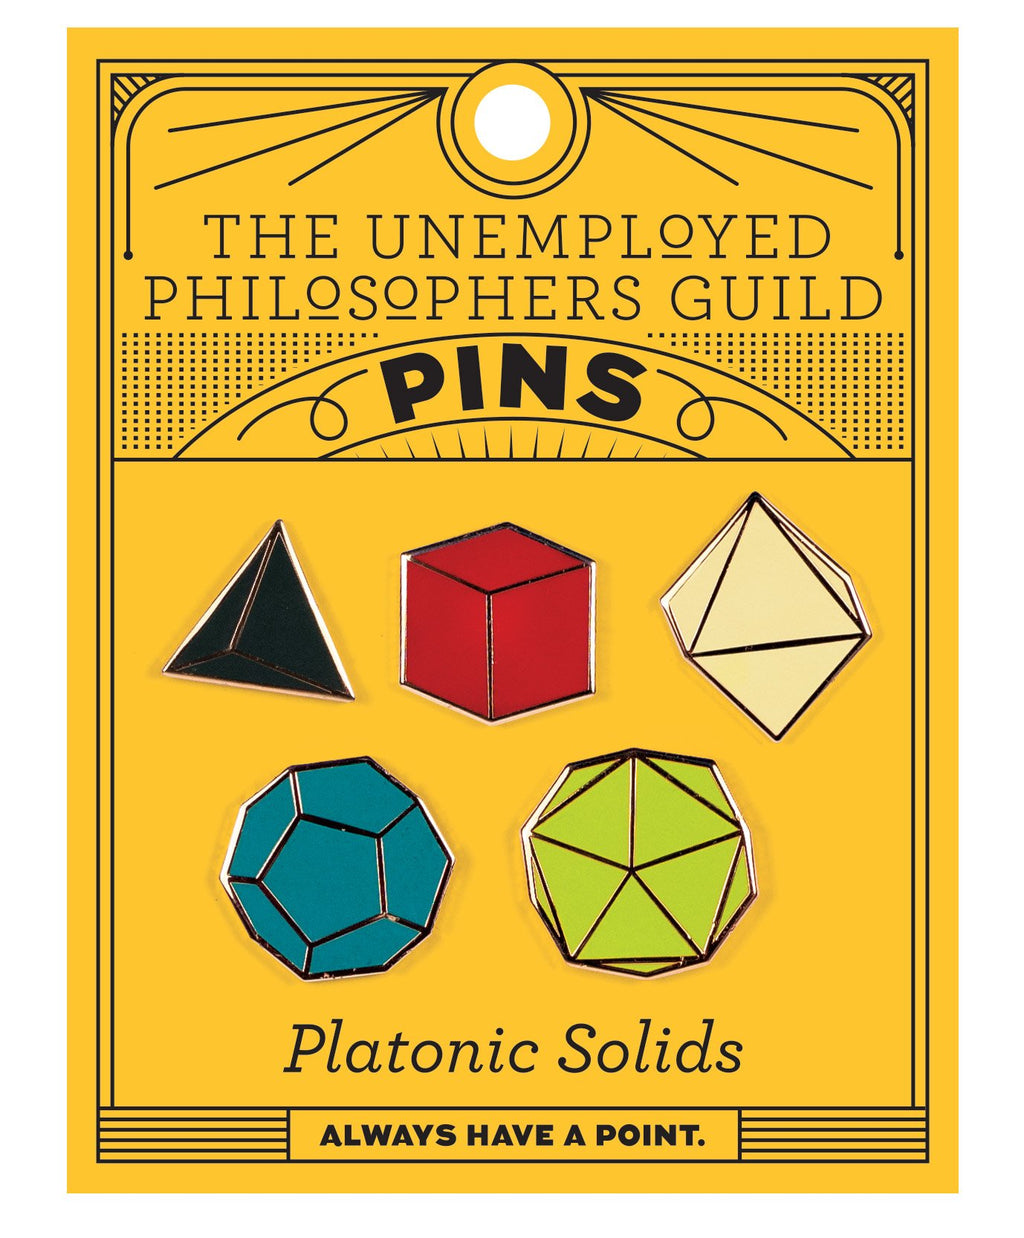 Platonic Solids Pin Badges